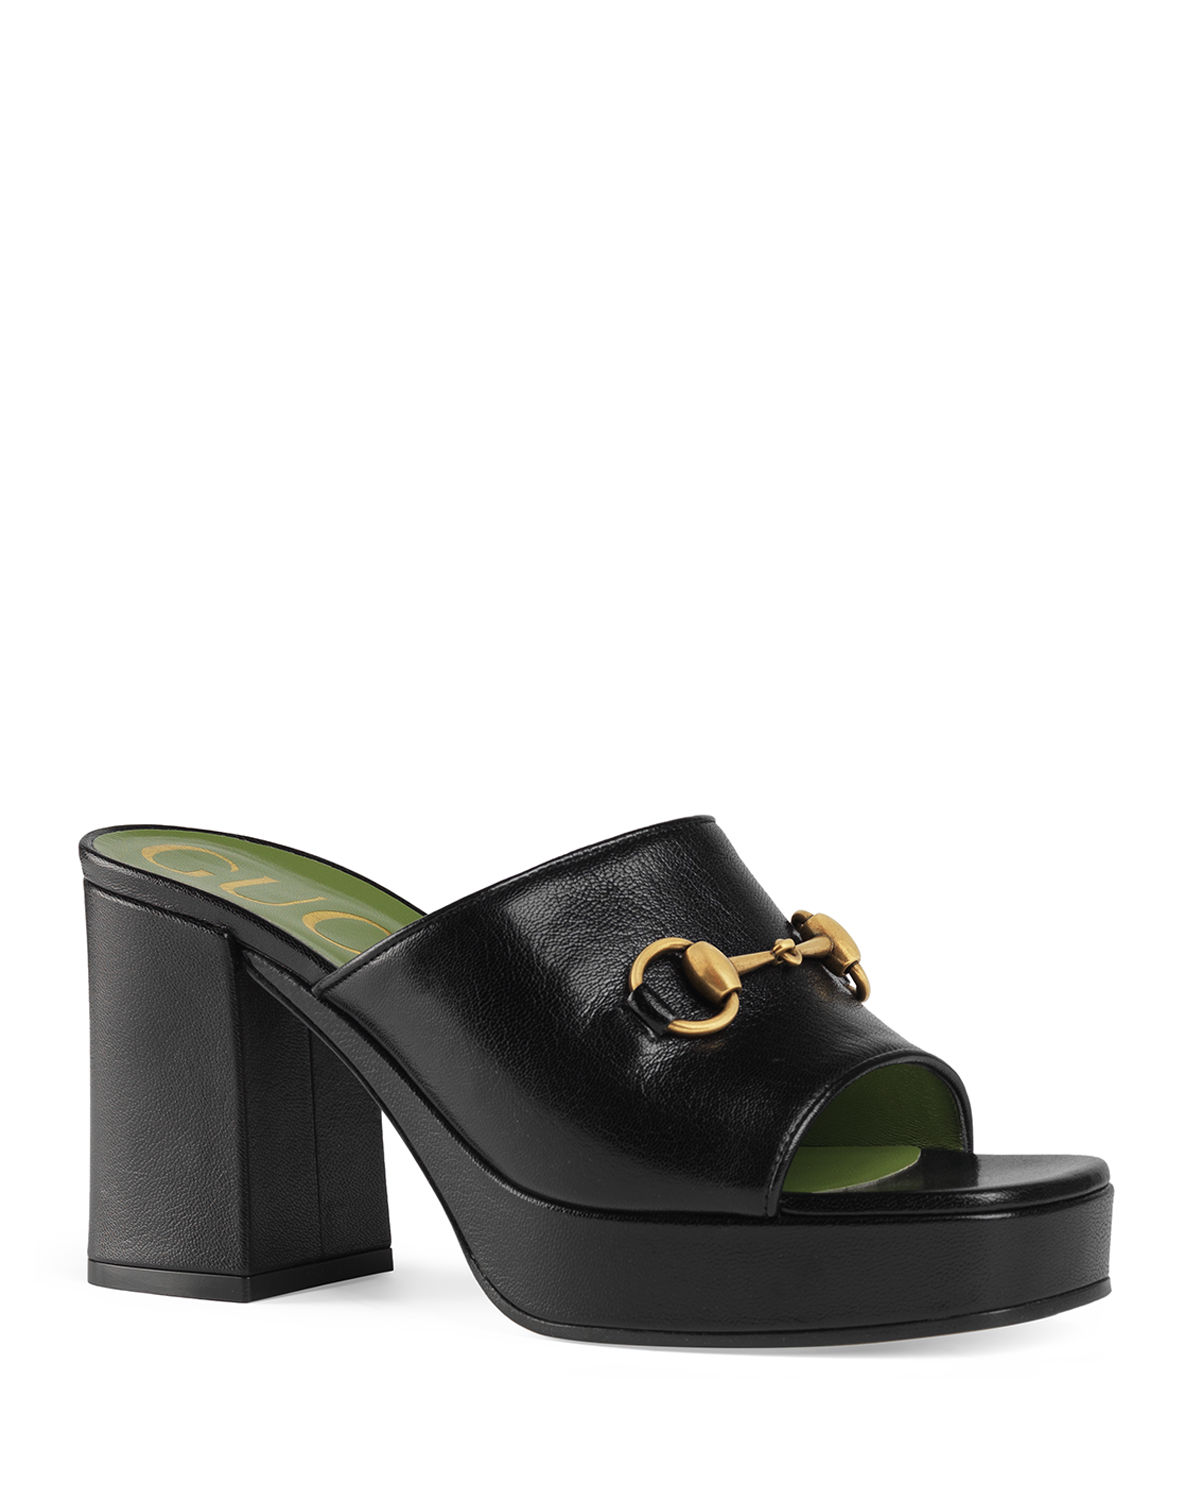 Gucci Sandals HOUDAN 85MM LEATHER SLIDE SANDALS